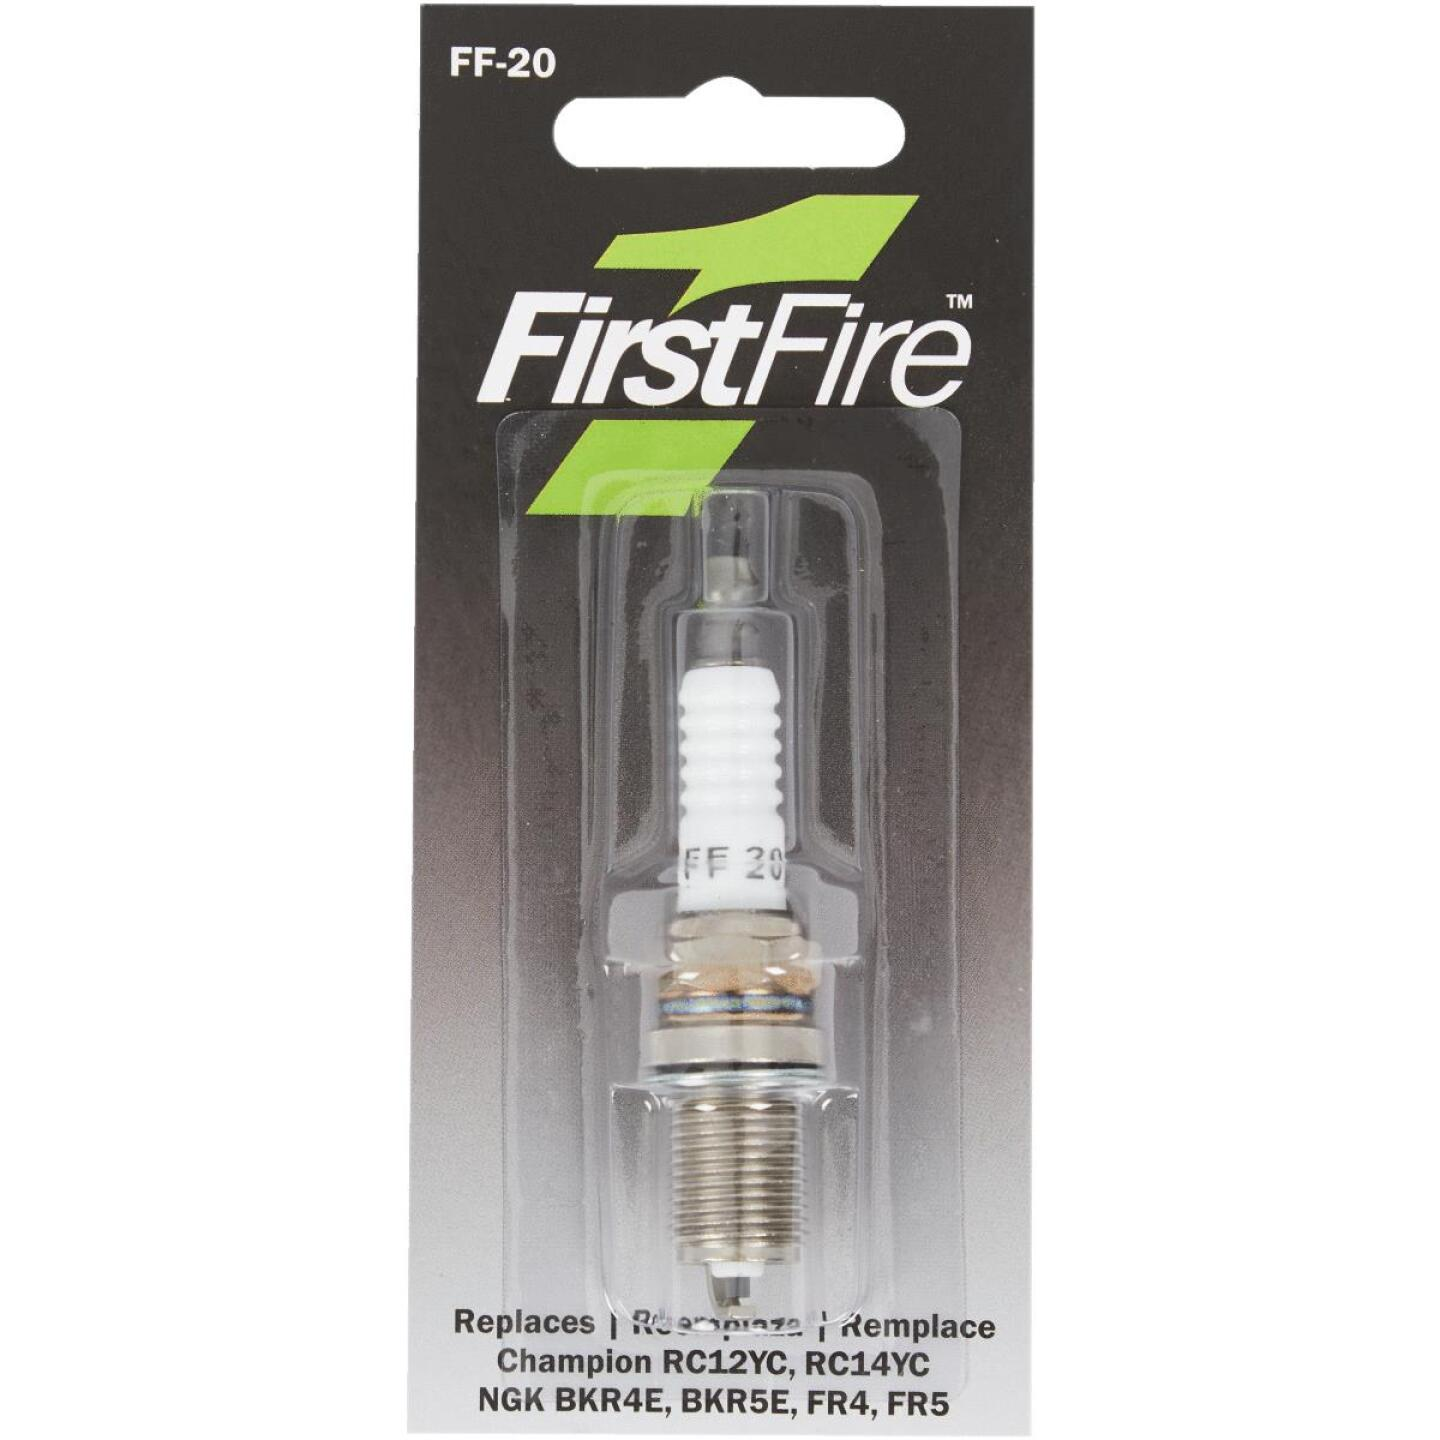 Arnold FirstFire 5/8 In. 4-Cycle Spark Plug Image 2